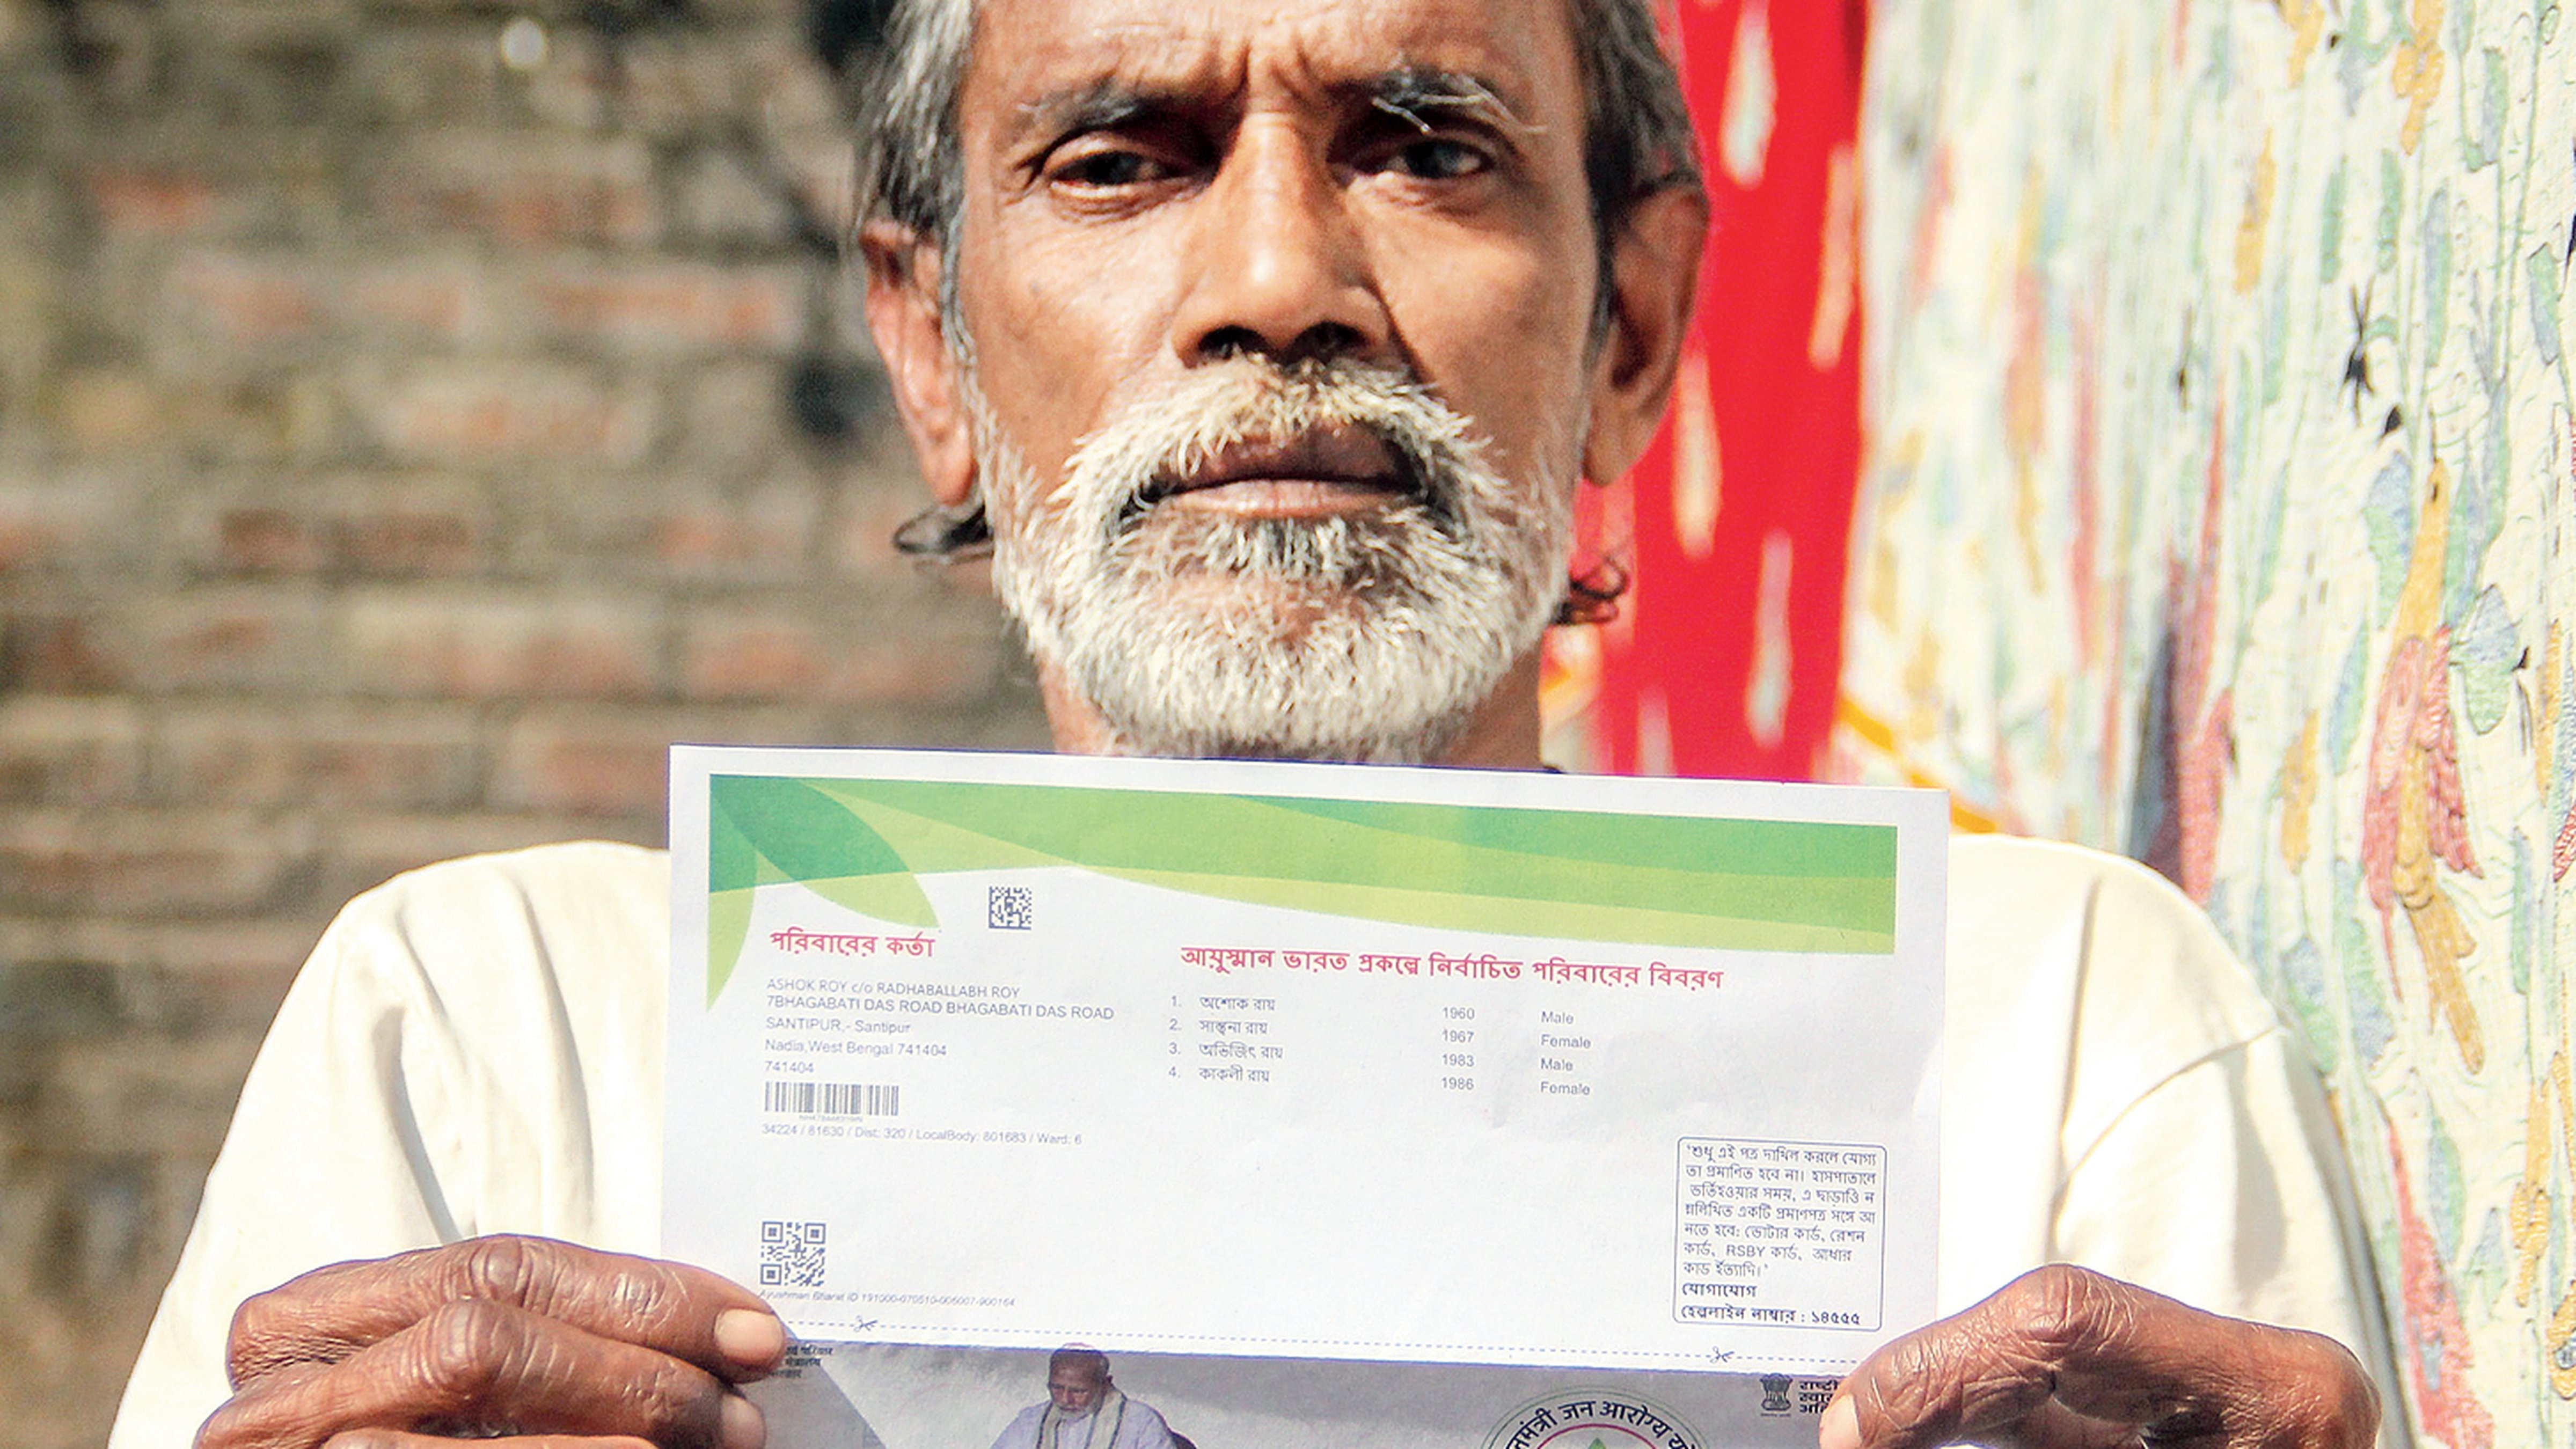 A beneficiary with Ayushman card.